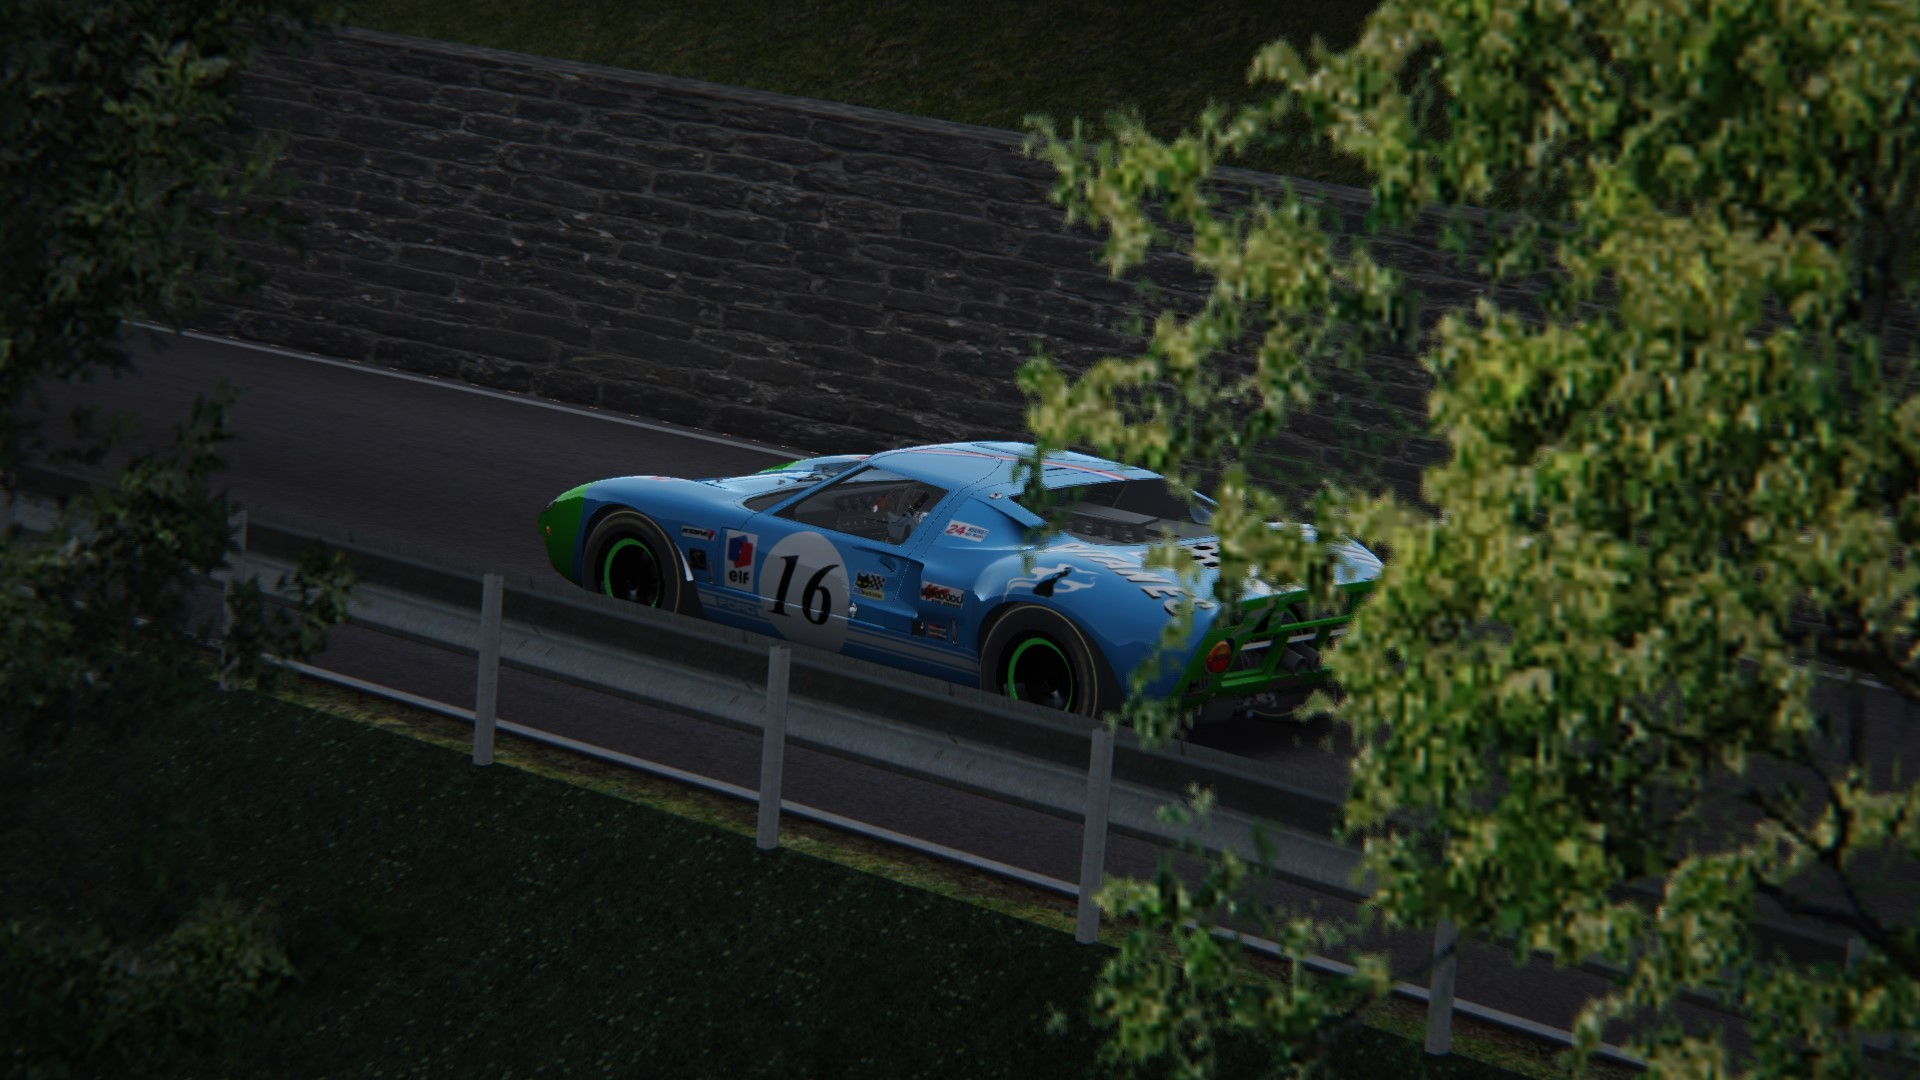 Screenshot_ks_ford_gt40_trento-bondone_7-11-115-21-3-30.jpg